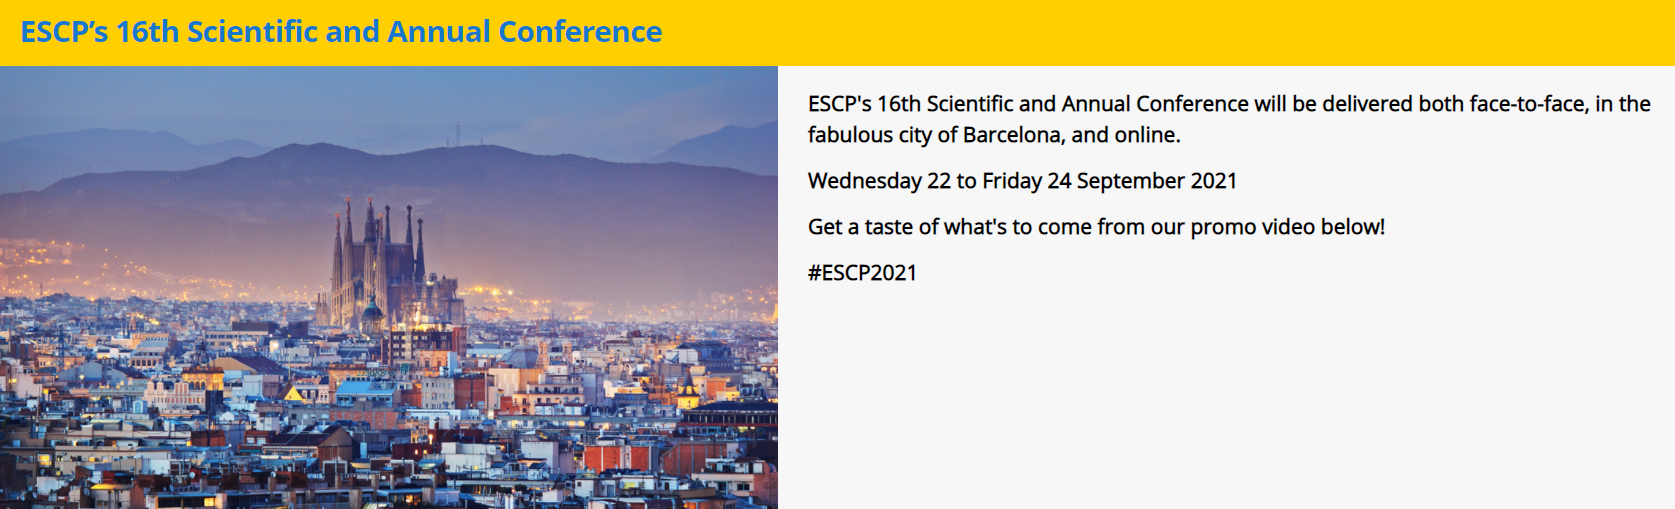 September 22-24, 2021 ESCP SCIENTIFIC AND ANNUAL CONFERENCE